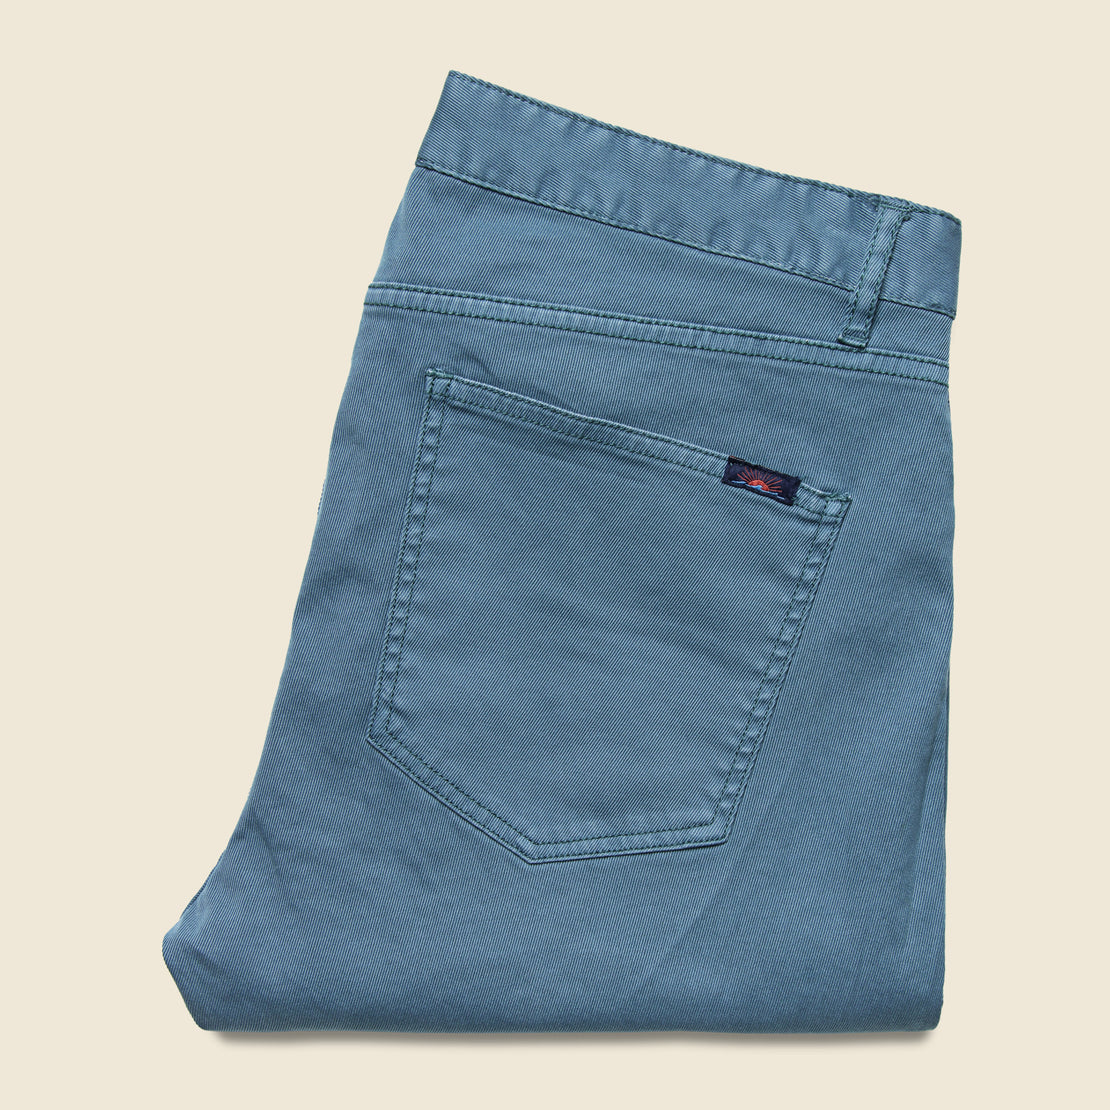 Cavalry Jean - Washed Blue - Faherty - STAG Provisions - Pants - Twill